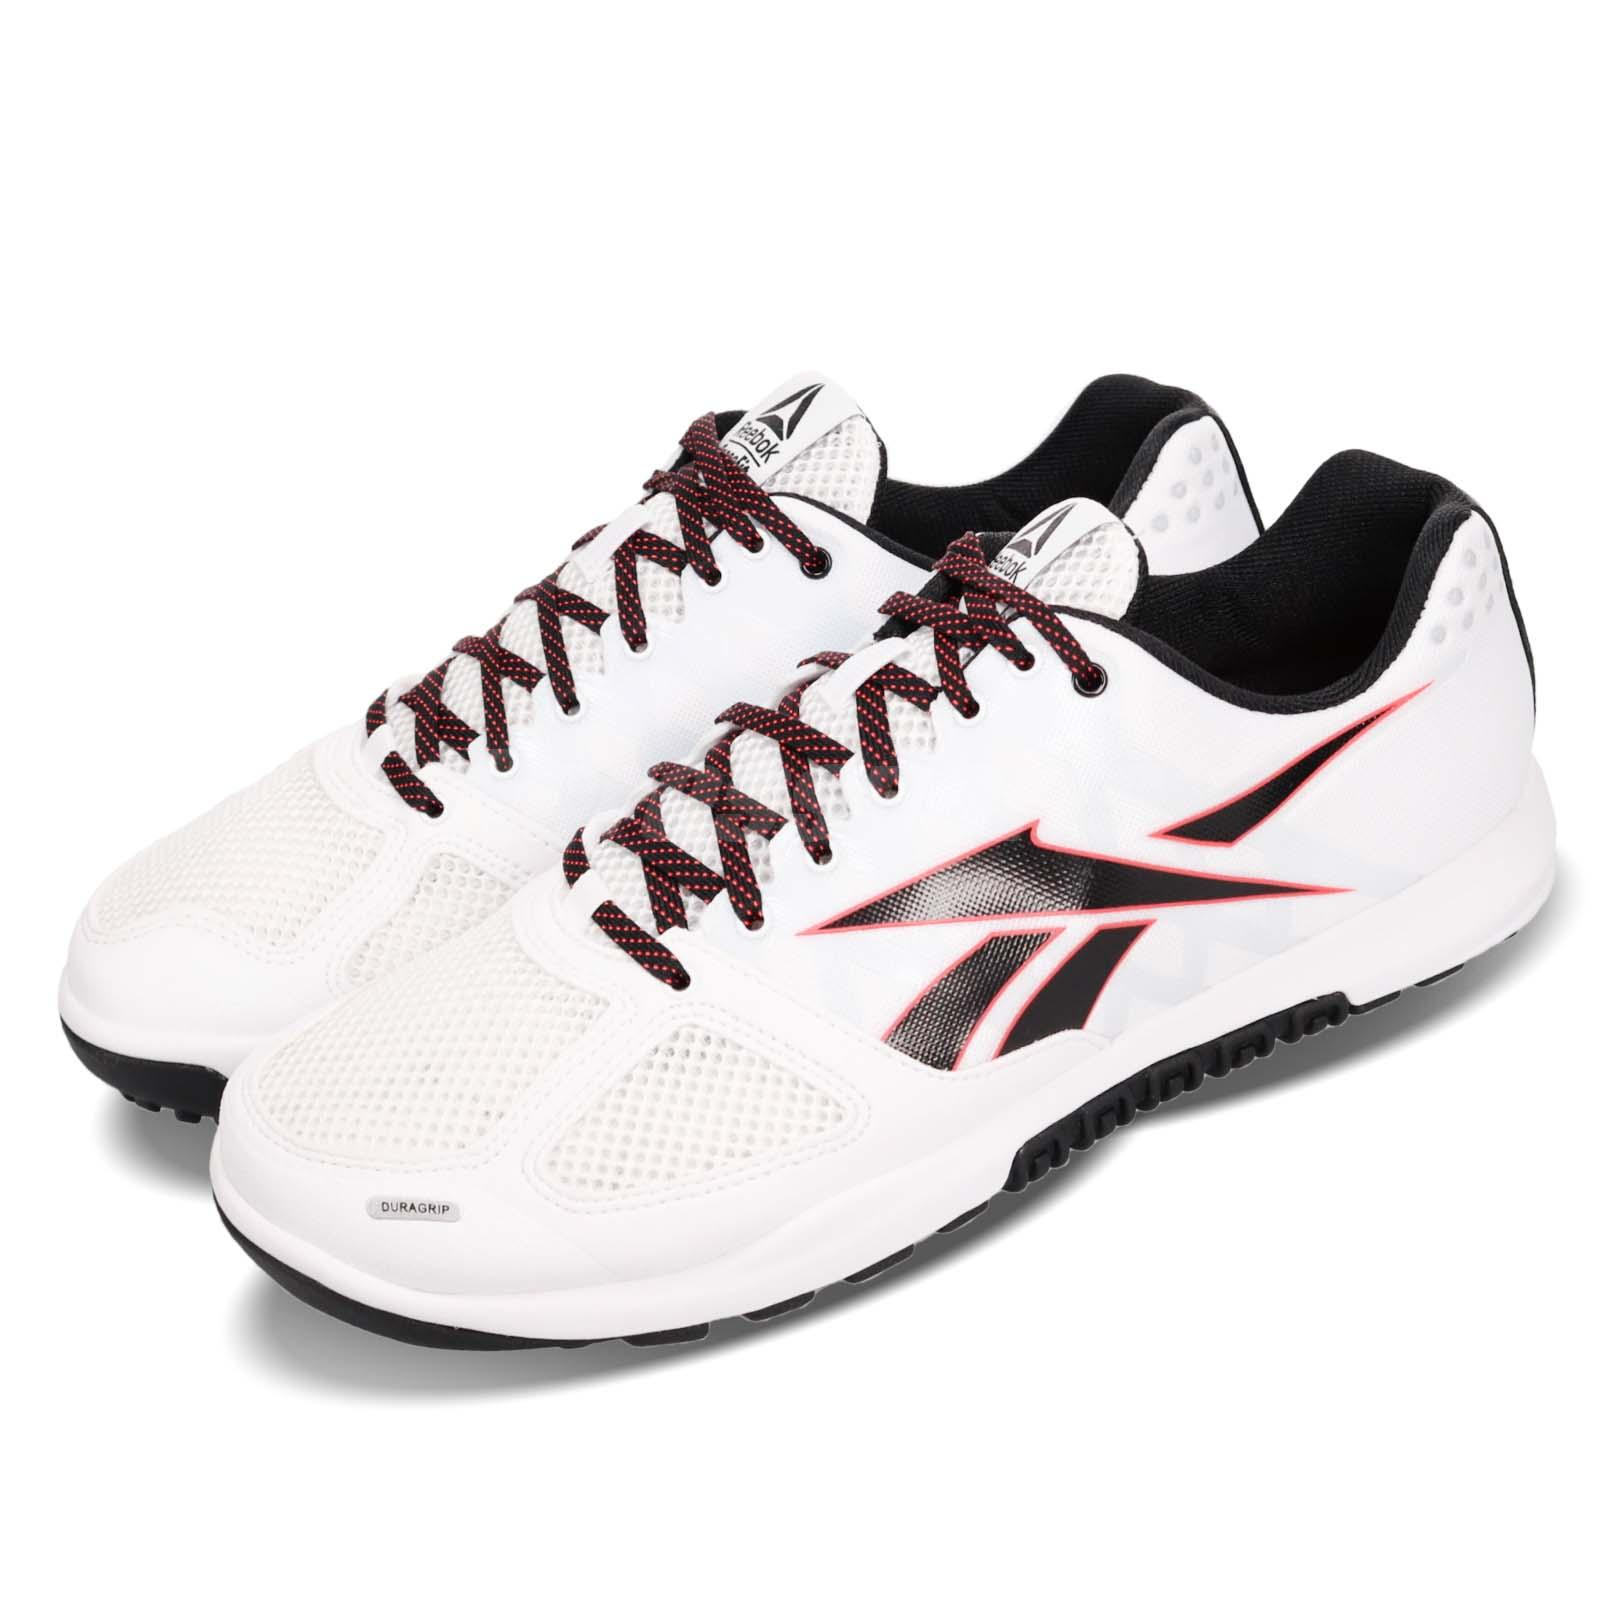 181ca03e38 Details about Reebok R CrossFit Nano 2.0 White Black Red Men Cross Training  Shoes DV5748